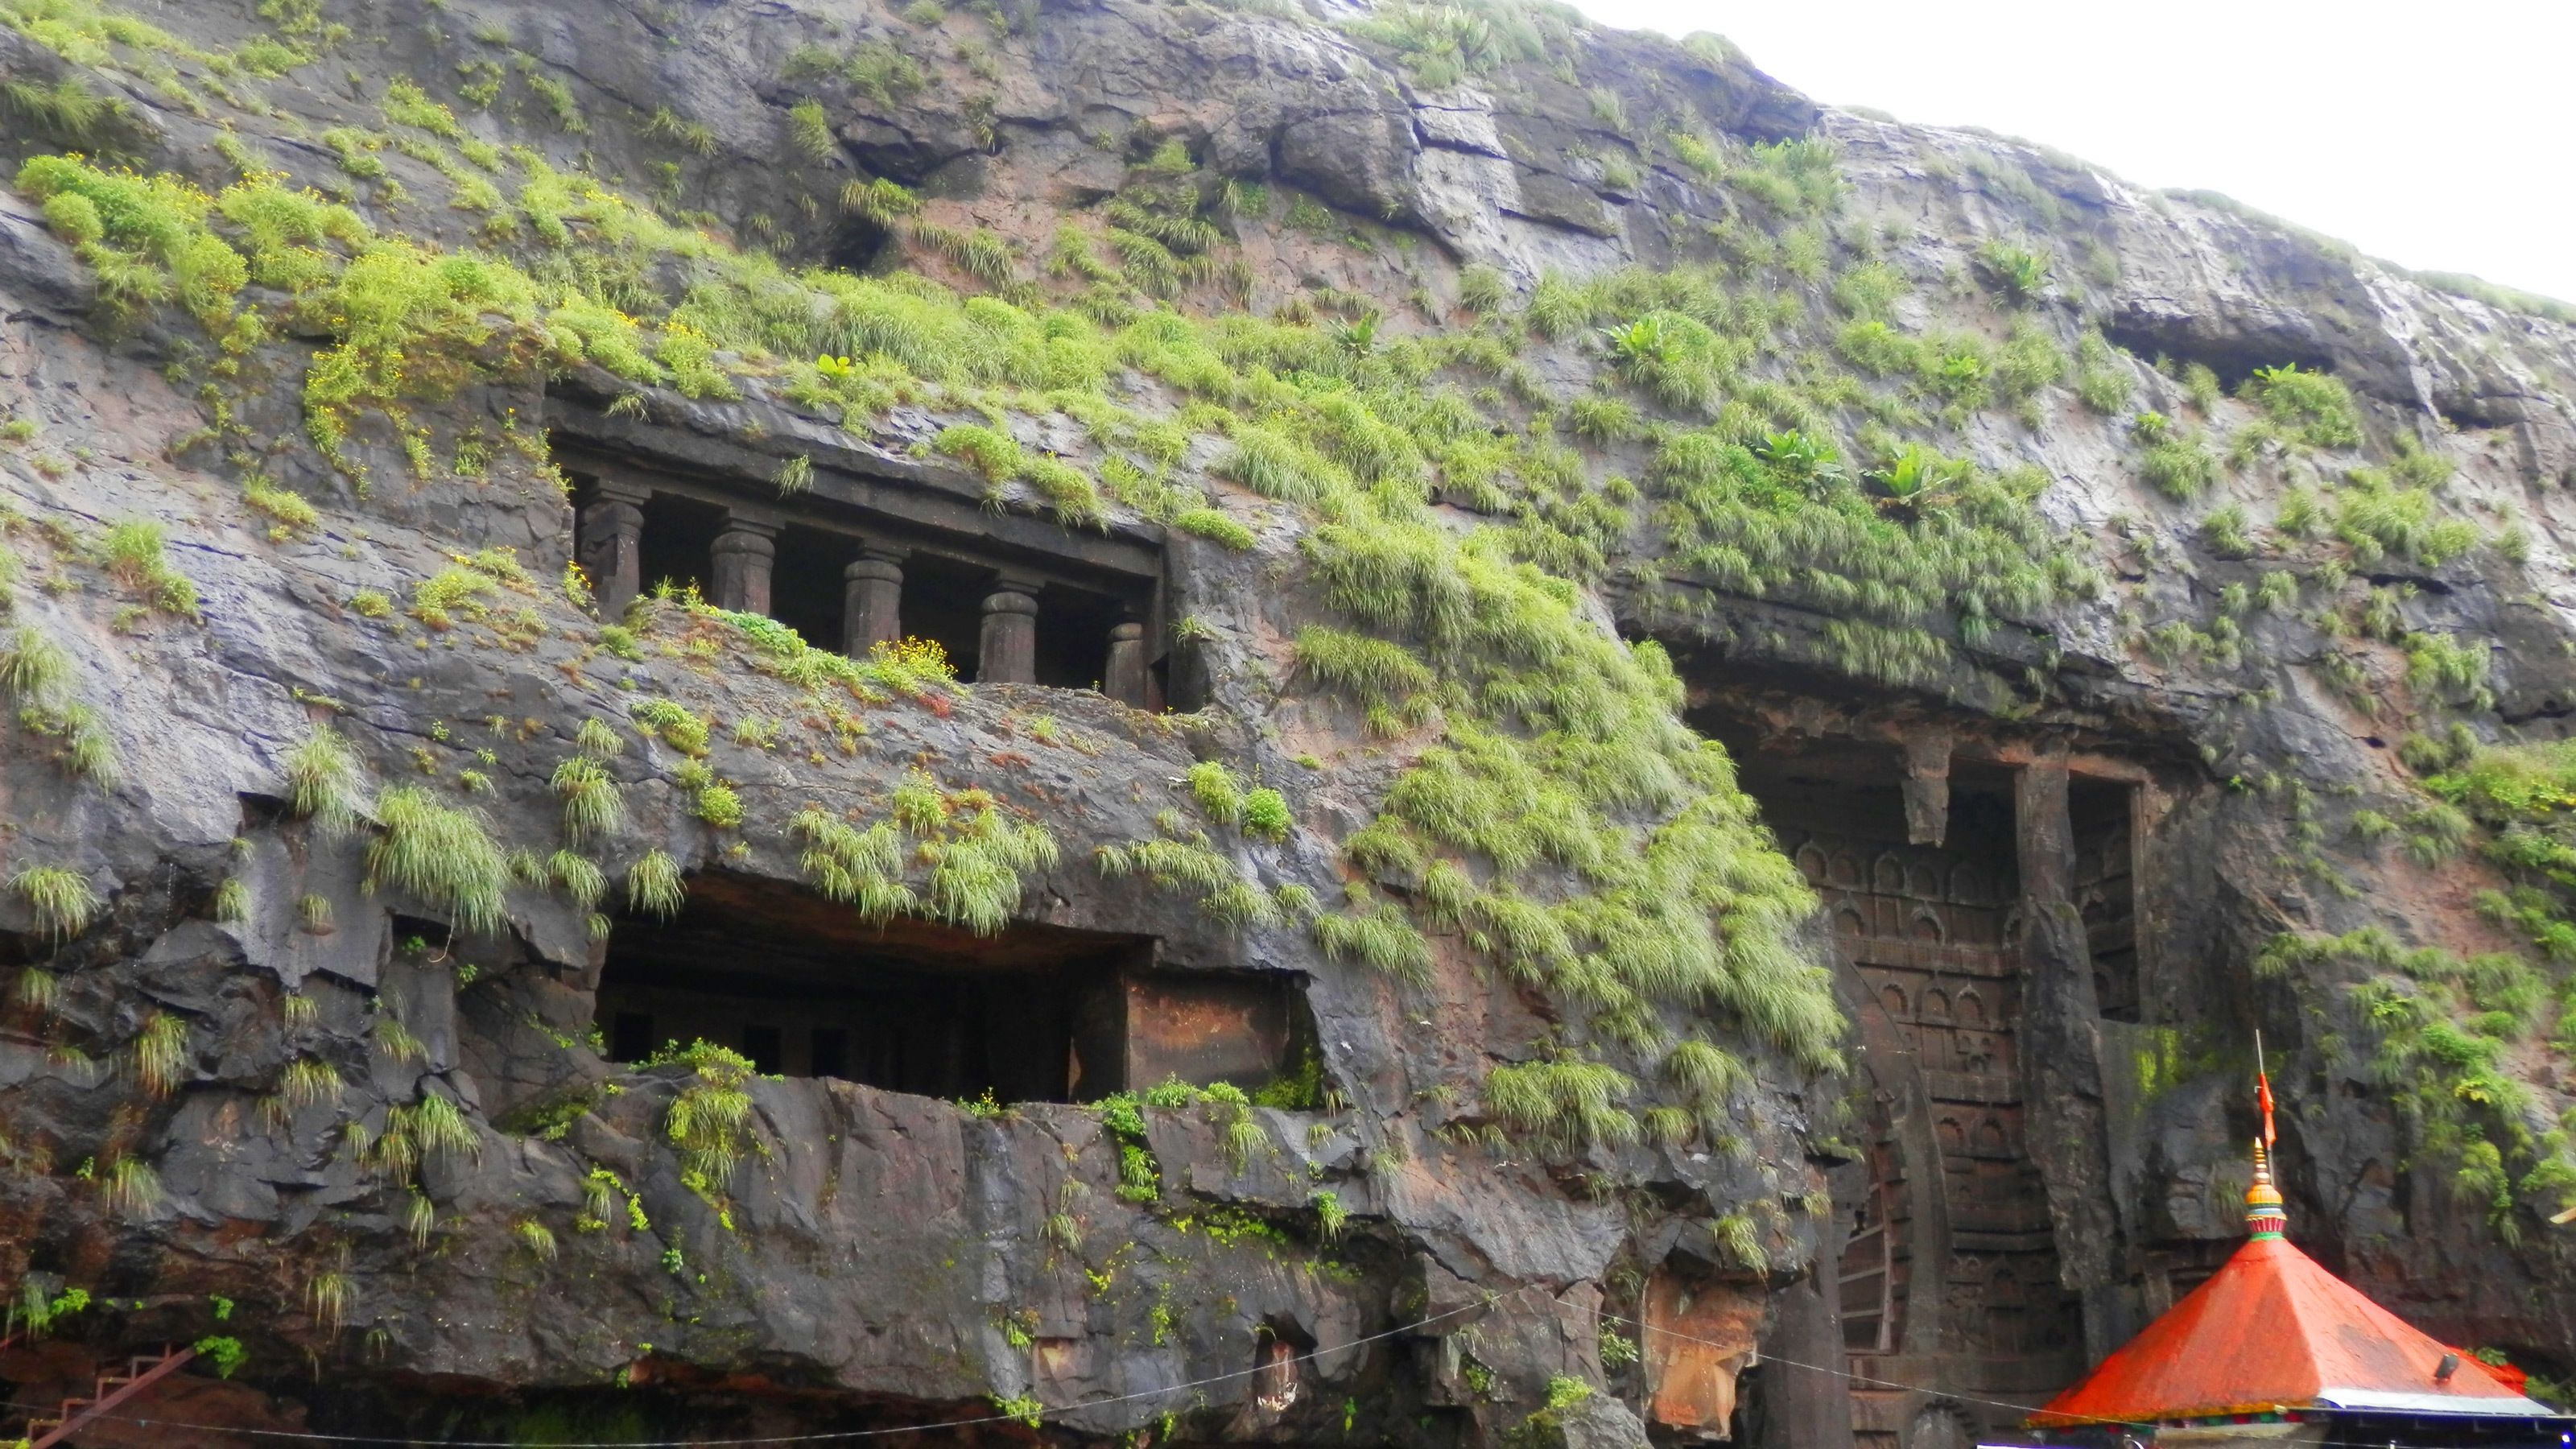 Remains of a temple peak through moss covered cliff faces at the Bhaja caves